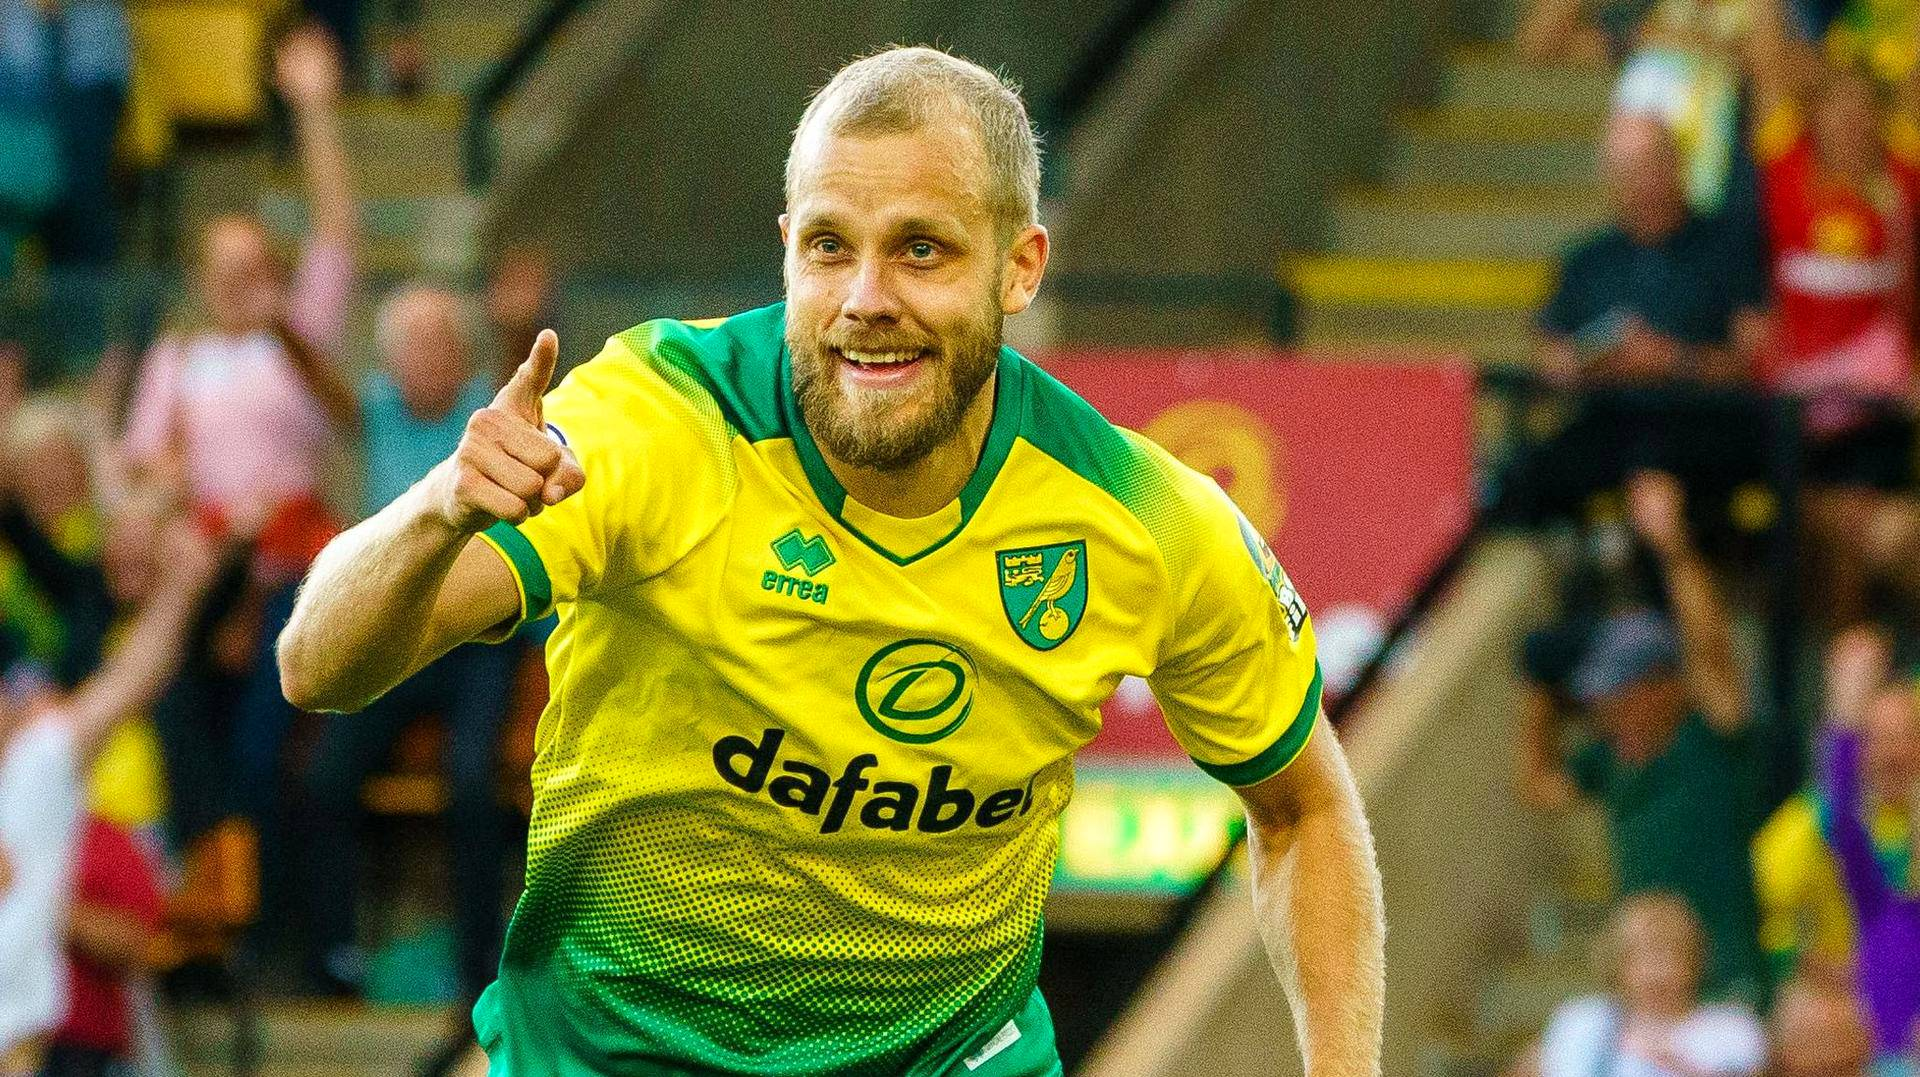 Opposition View: Norwich City